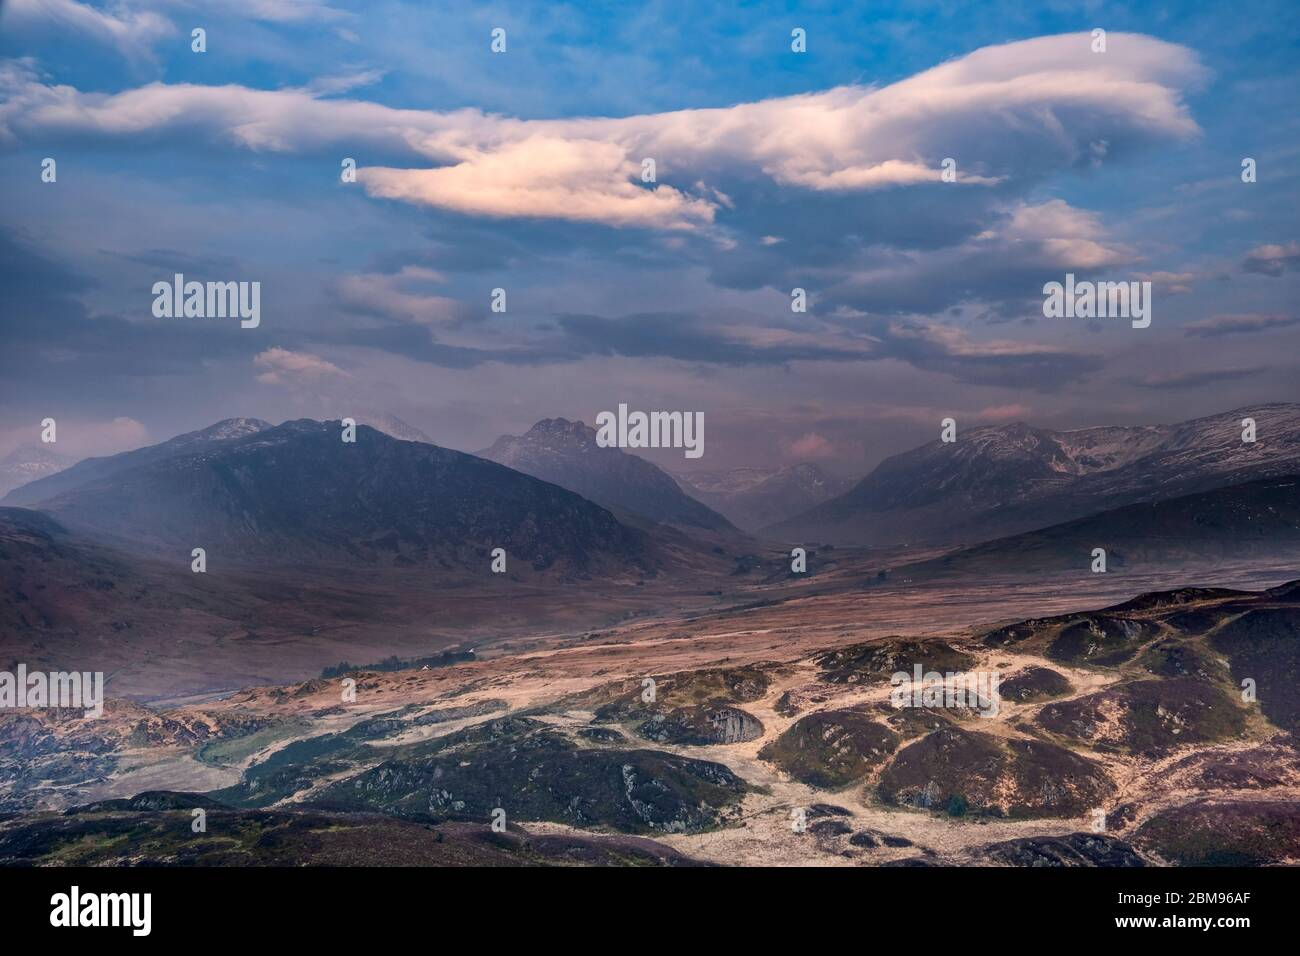 The Ogwen Valley and Glyderau Mountains at dawn from Crimpiau, Snowdonia National Park, North Wales, UK Stock Photo